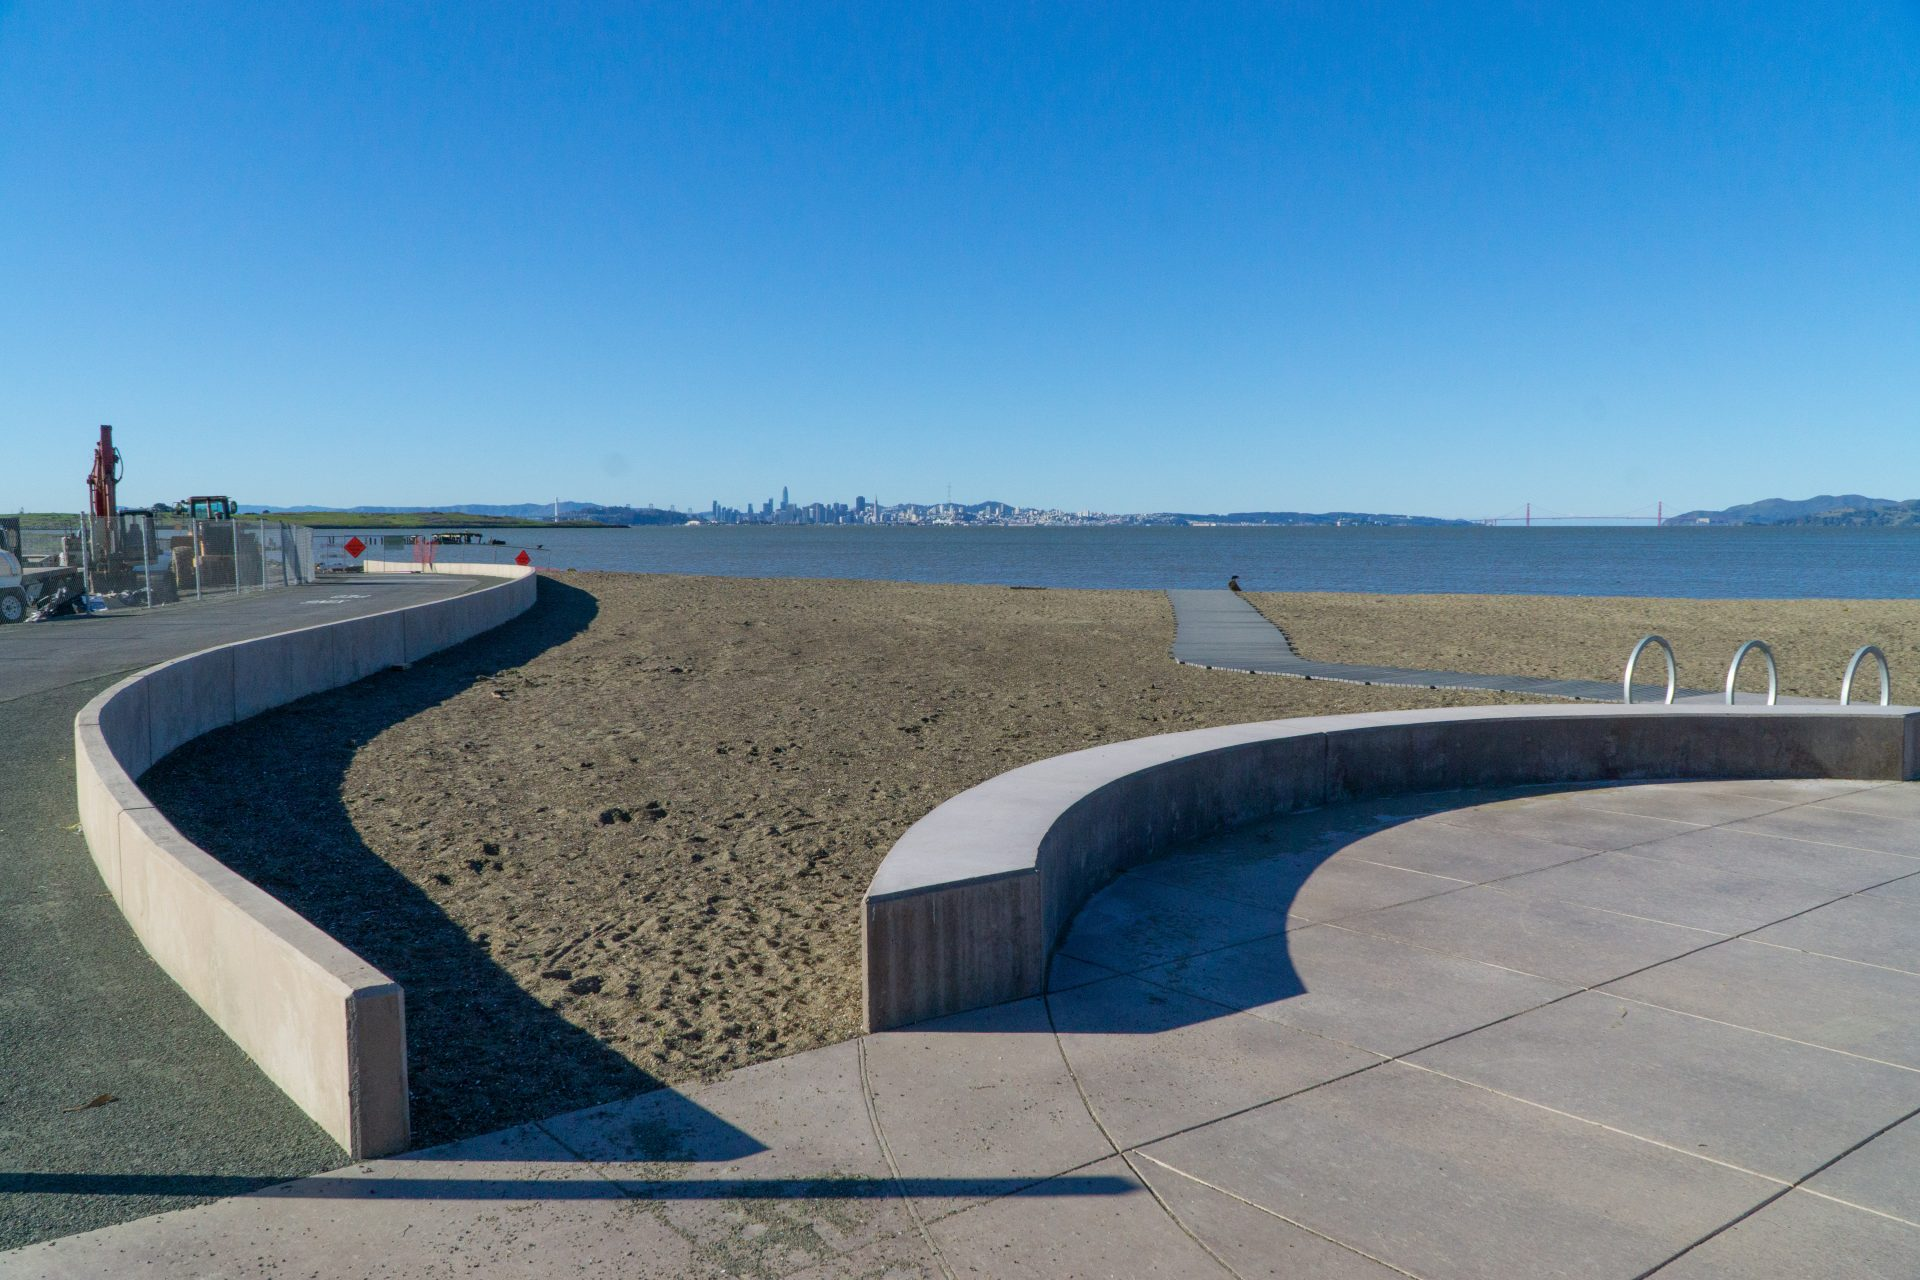 curved concrete walls and path foreground, sandy beach and bay beyond